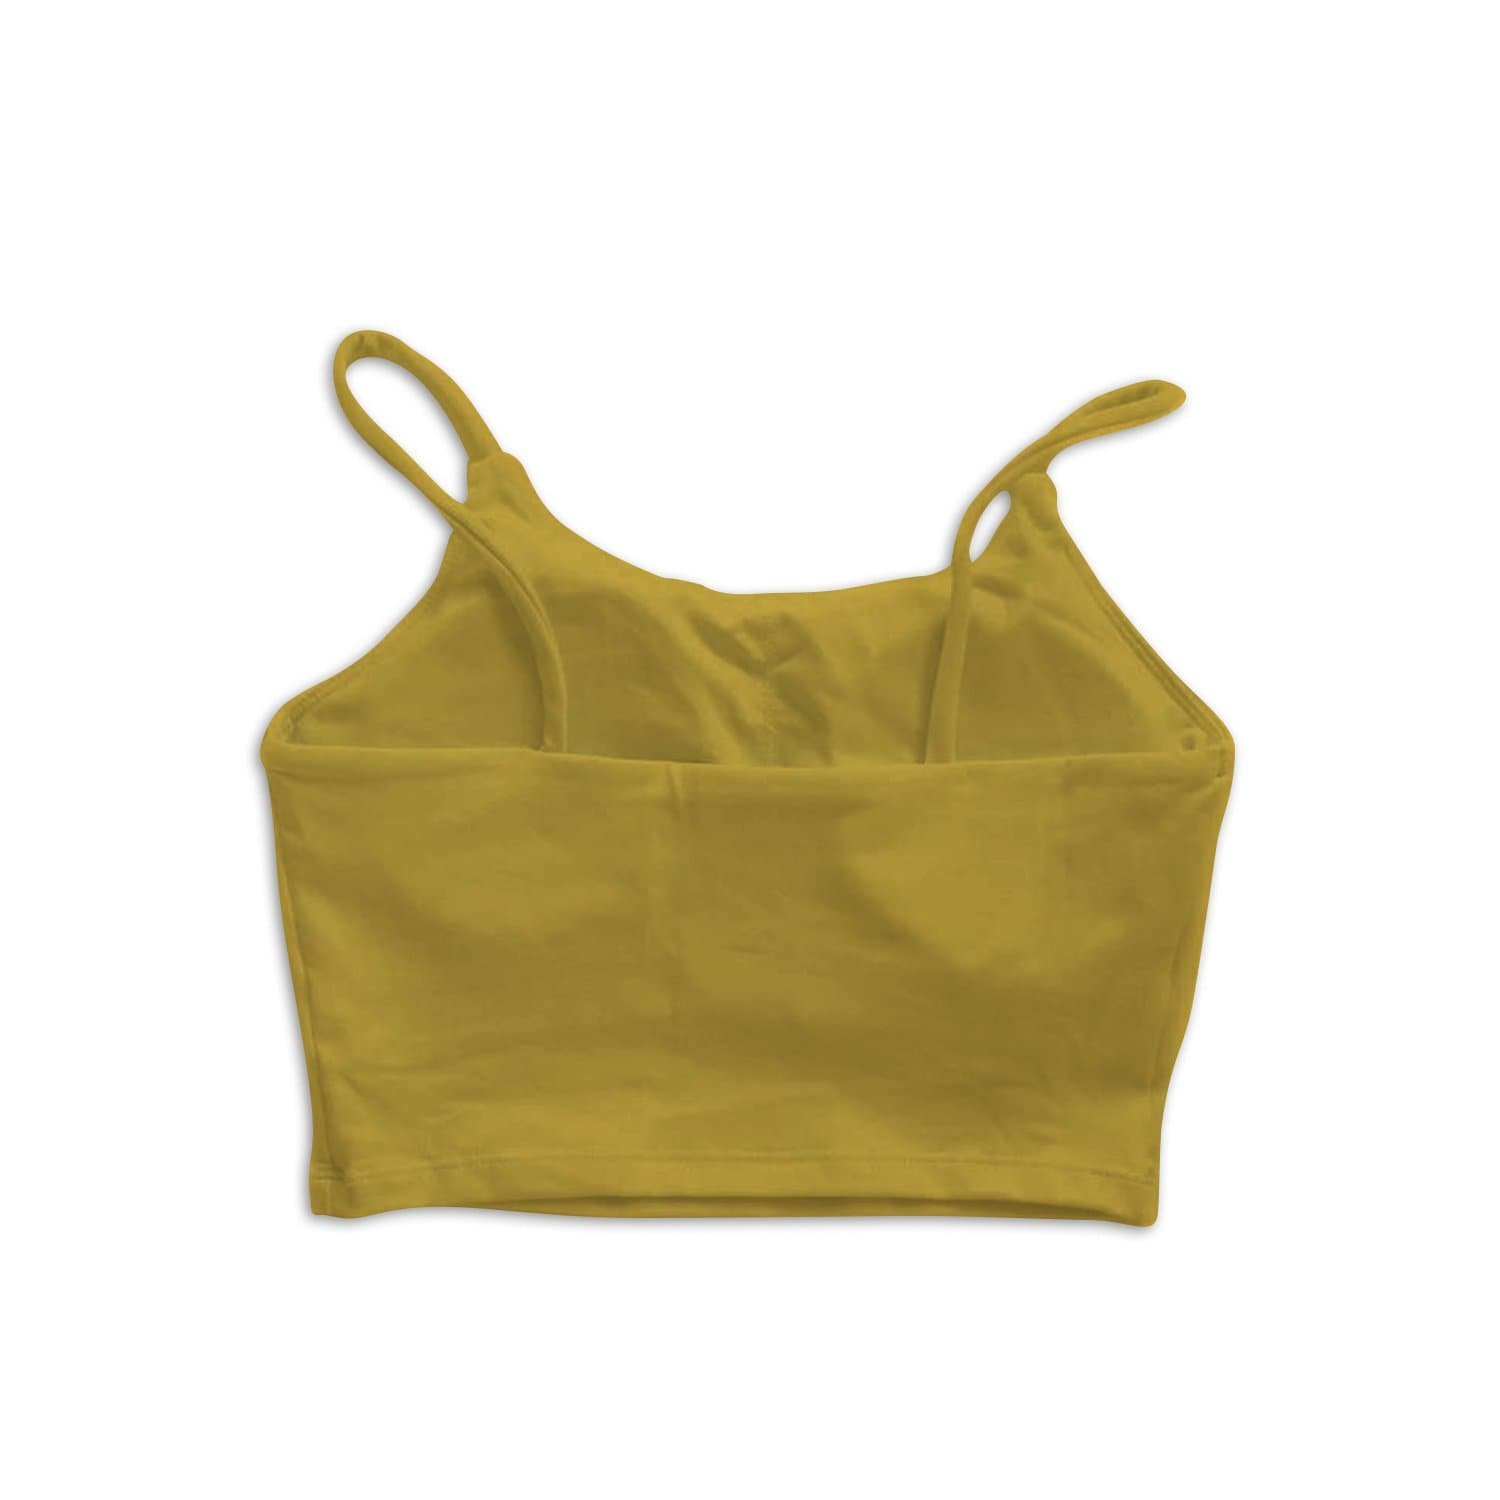 String Crop Top Bra - Chartreuse